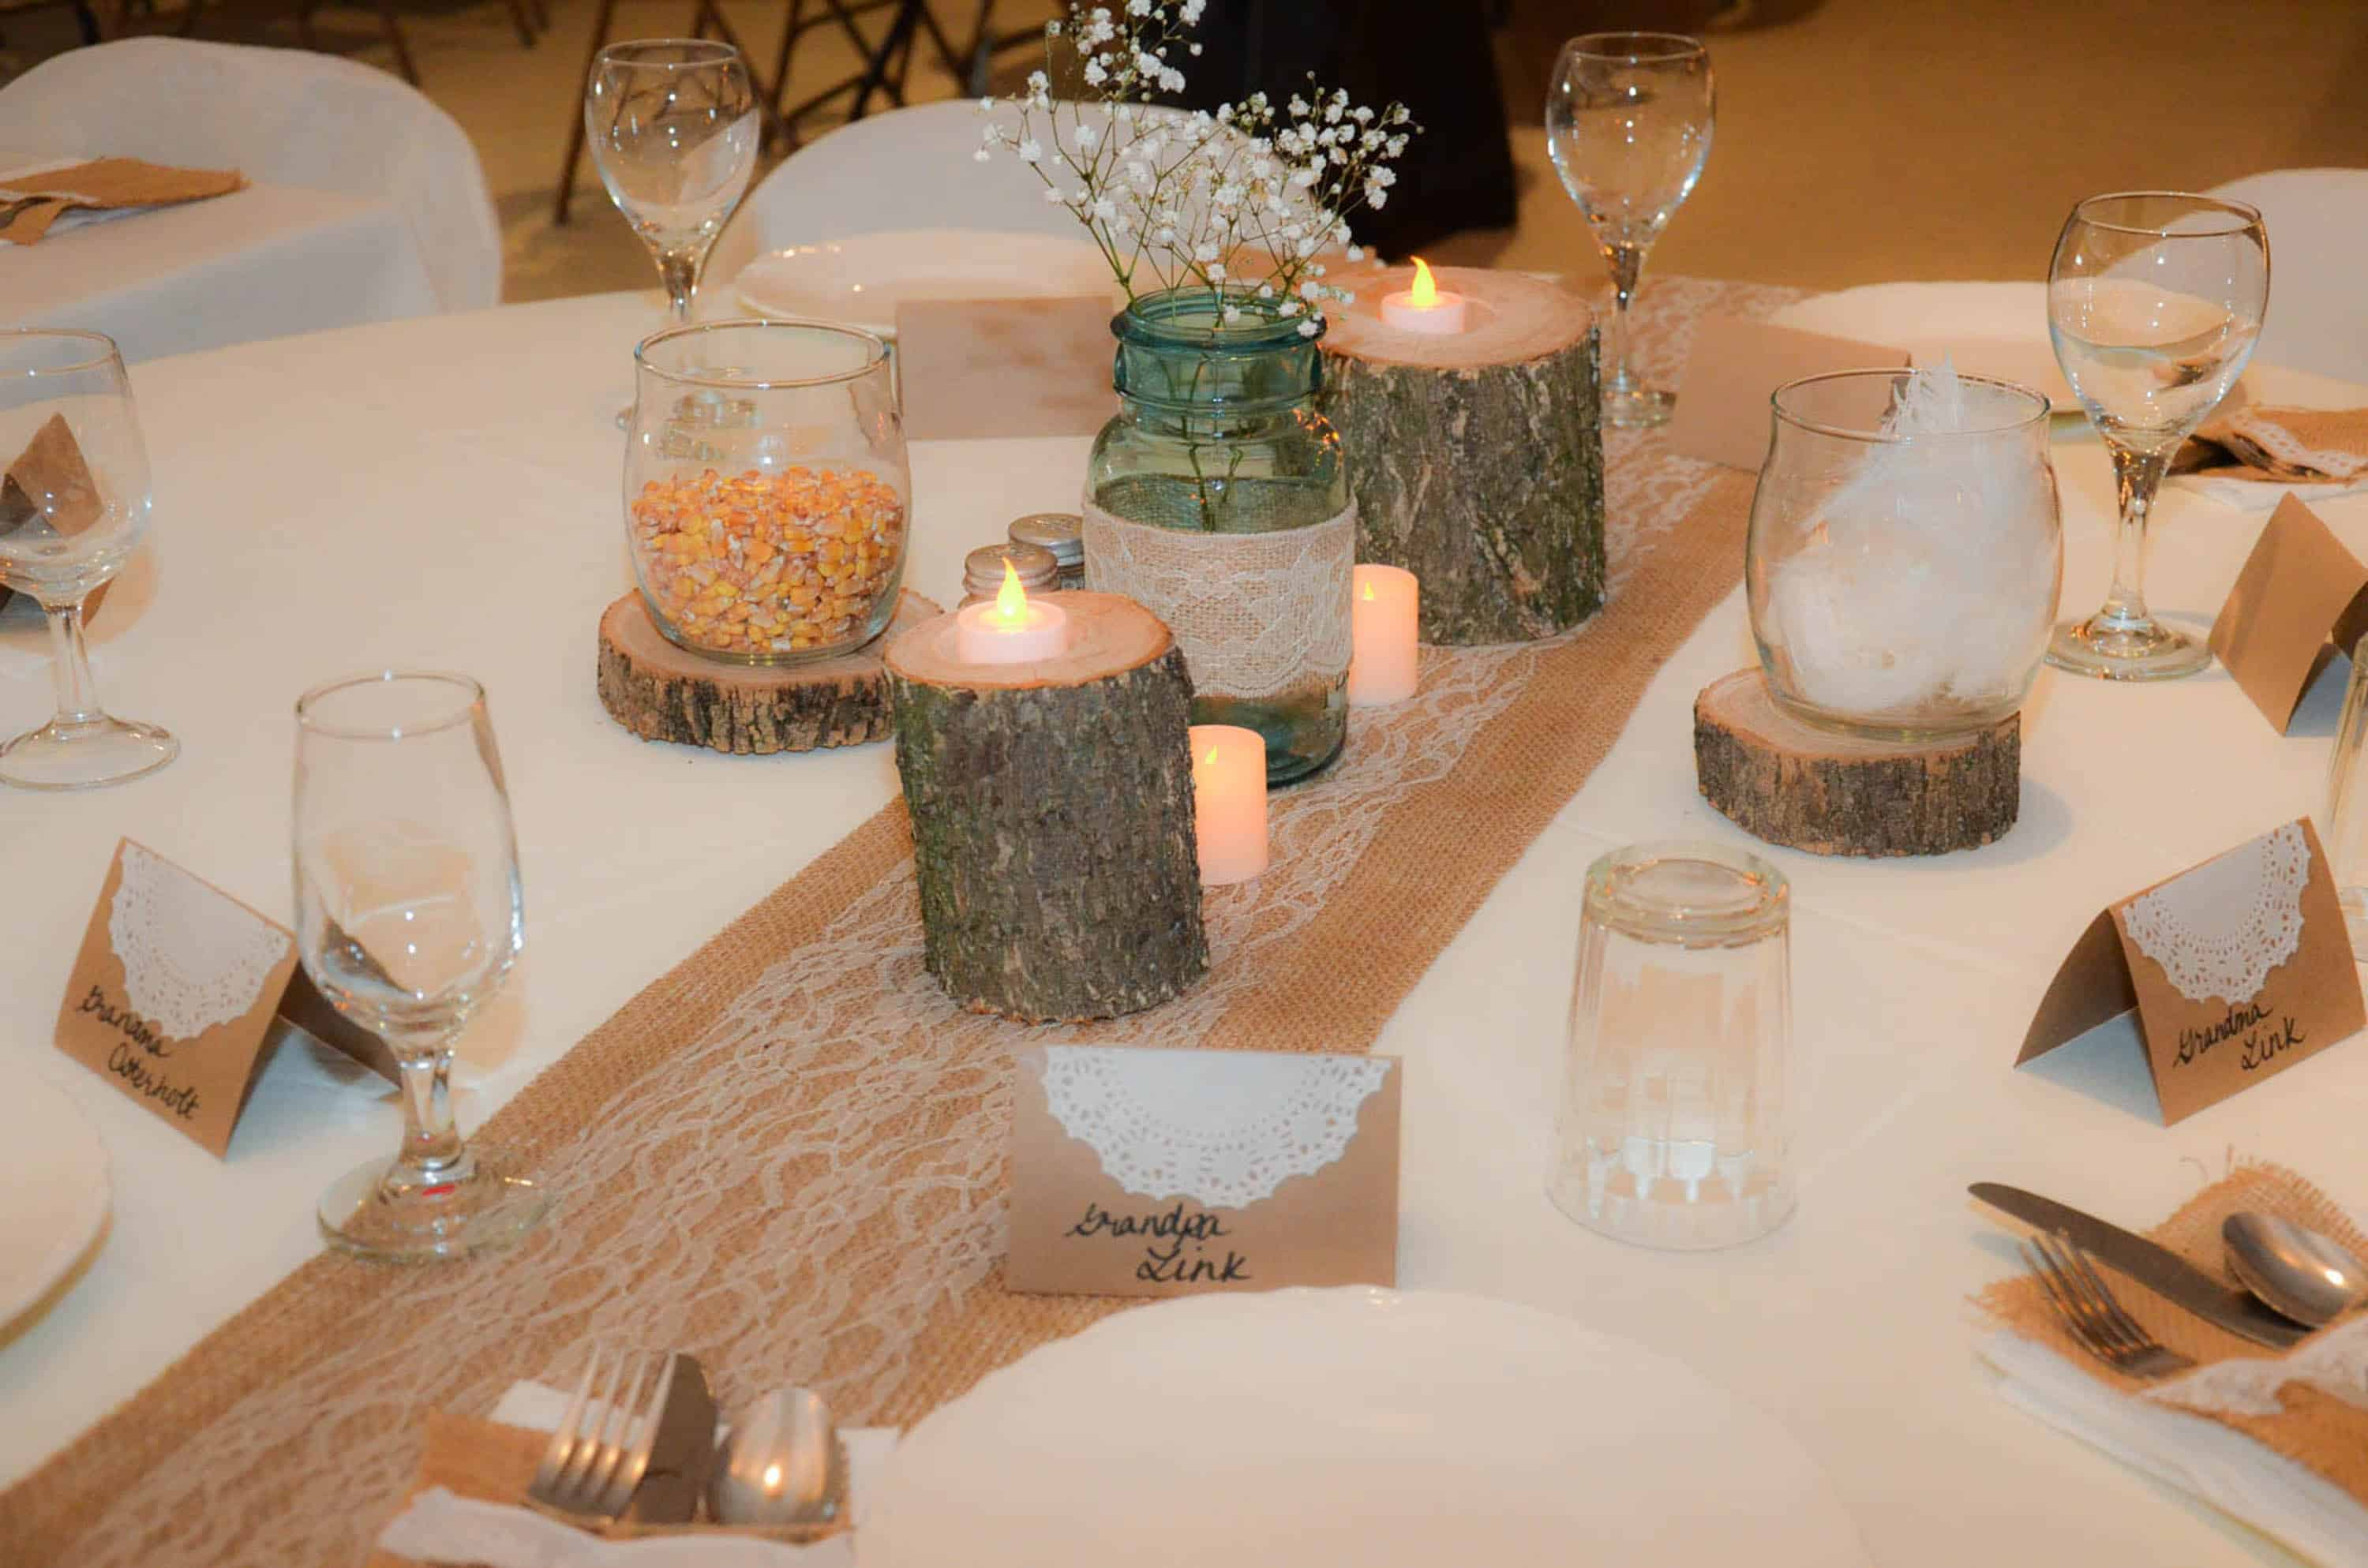 ideas for wedding table decorations burlap and lace country wedding decorations plowing 5074